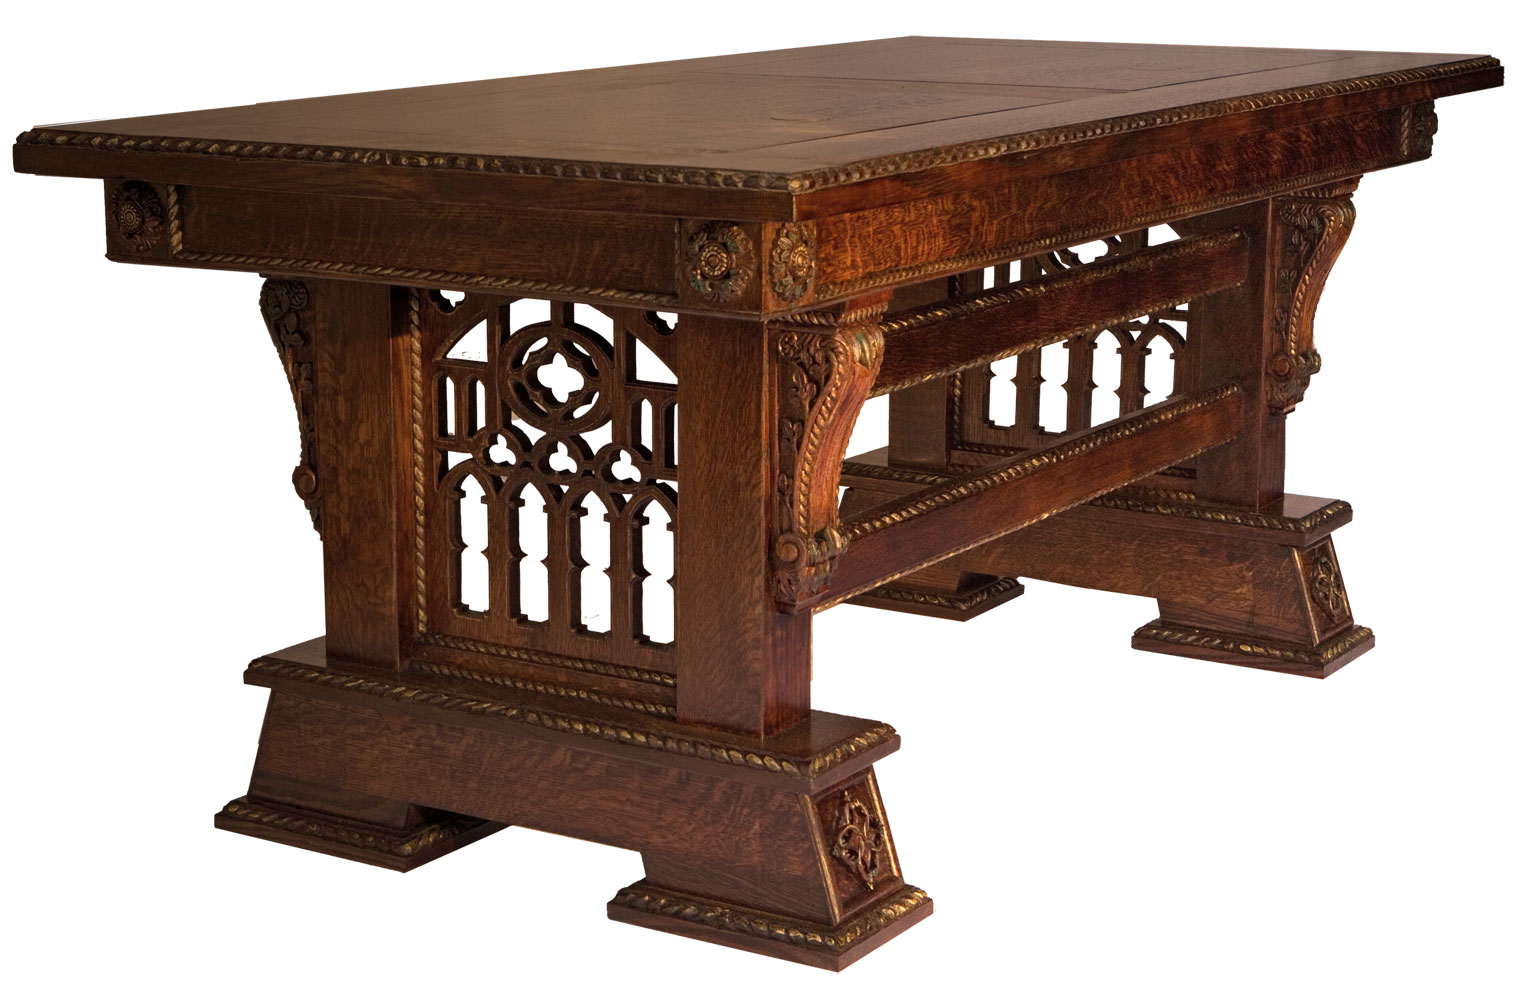 pf tb page1 custom kitchen tables Custom Made Hand Carved New Wave Gothic Desk Library Table by Artisans of